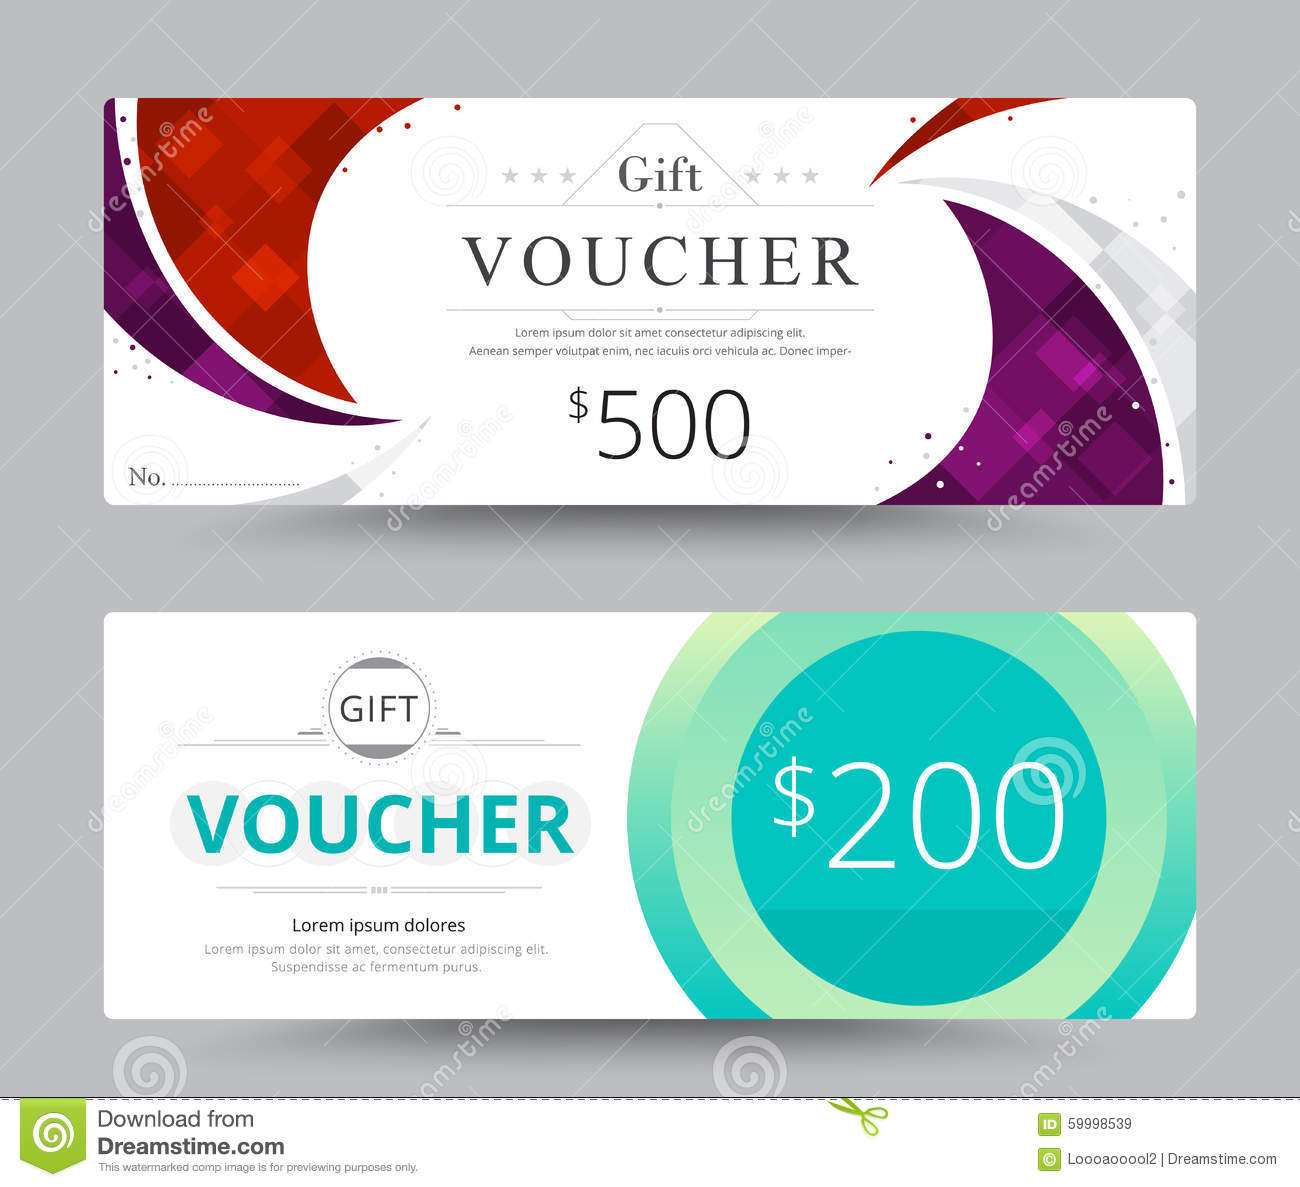 Koala Art And Design Discount Code : Gift voucher card template design for special time